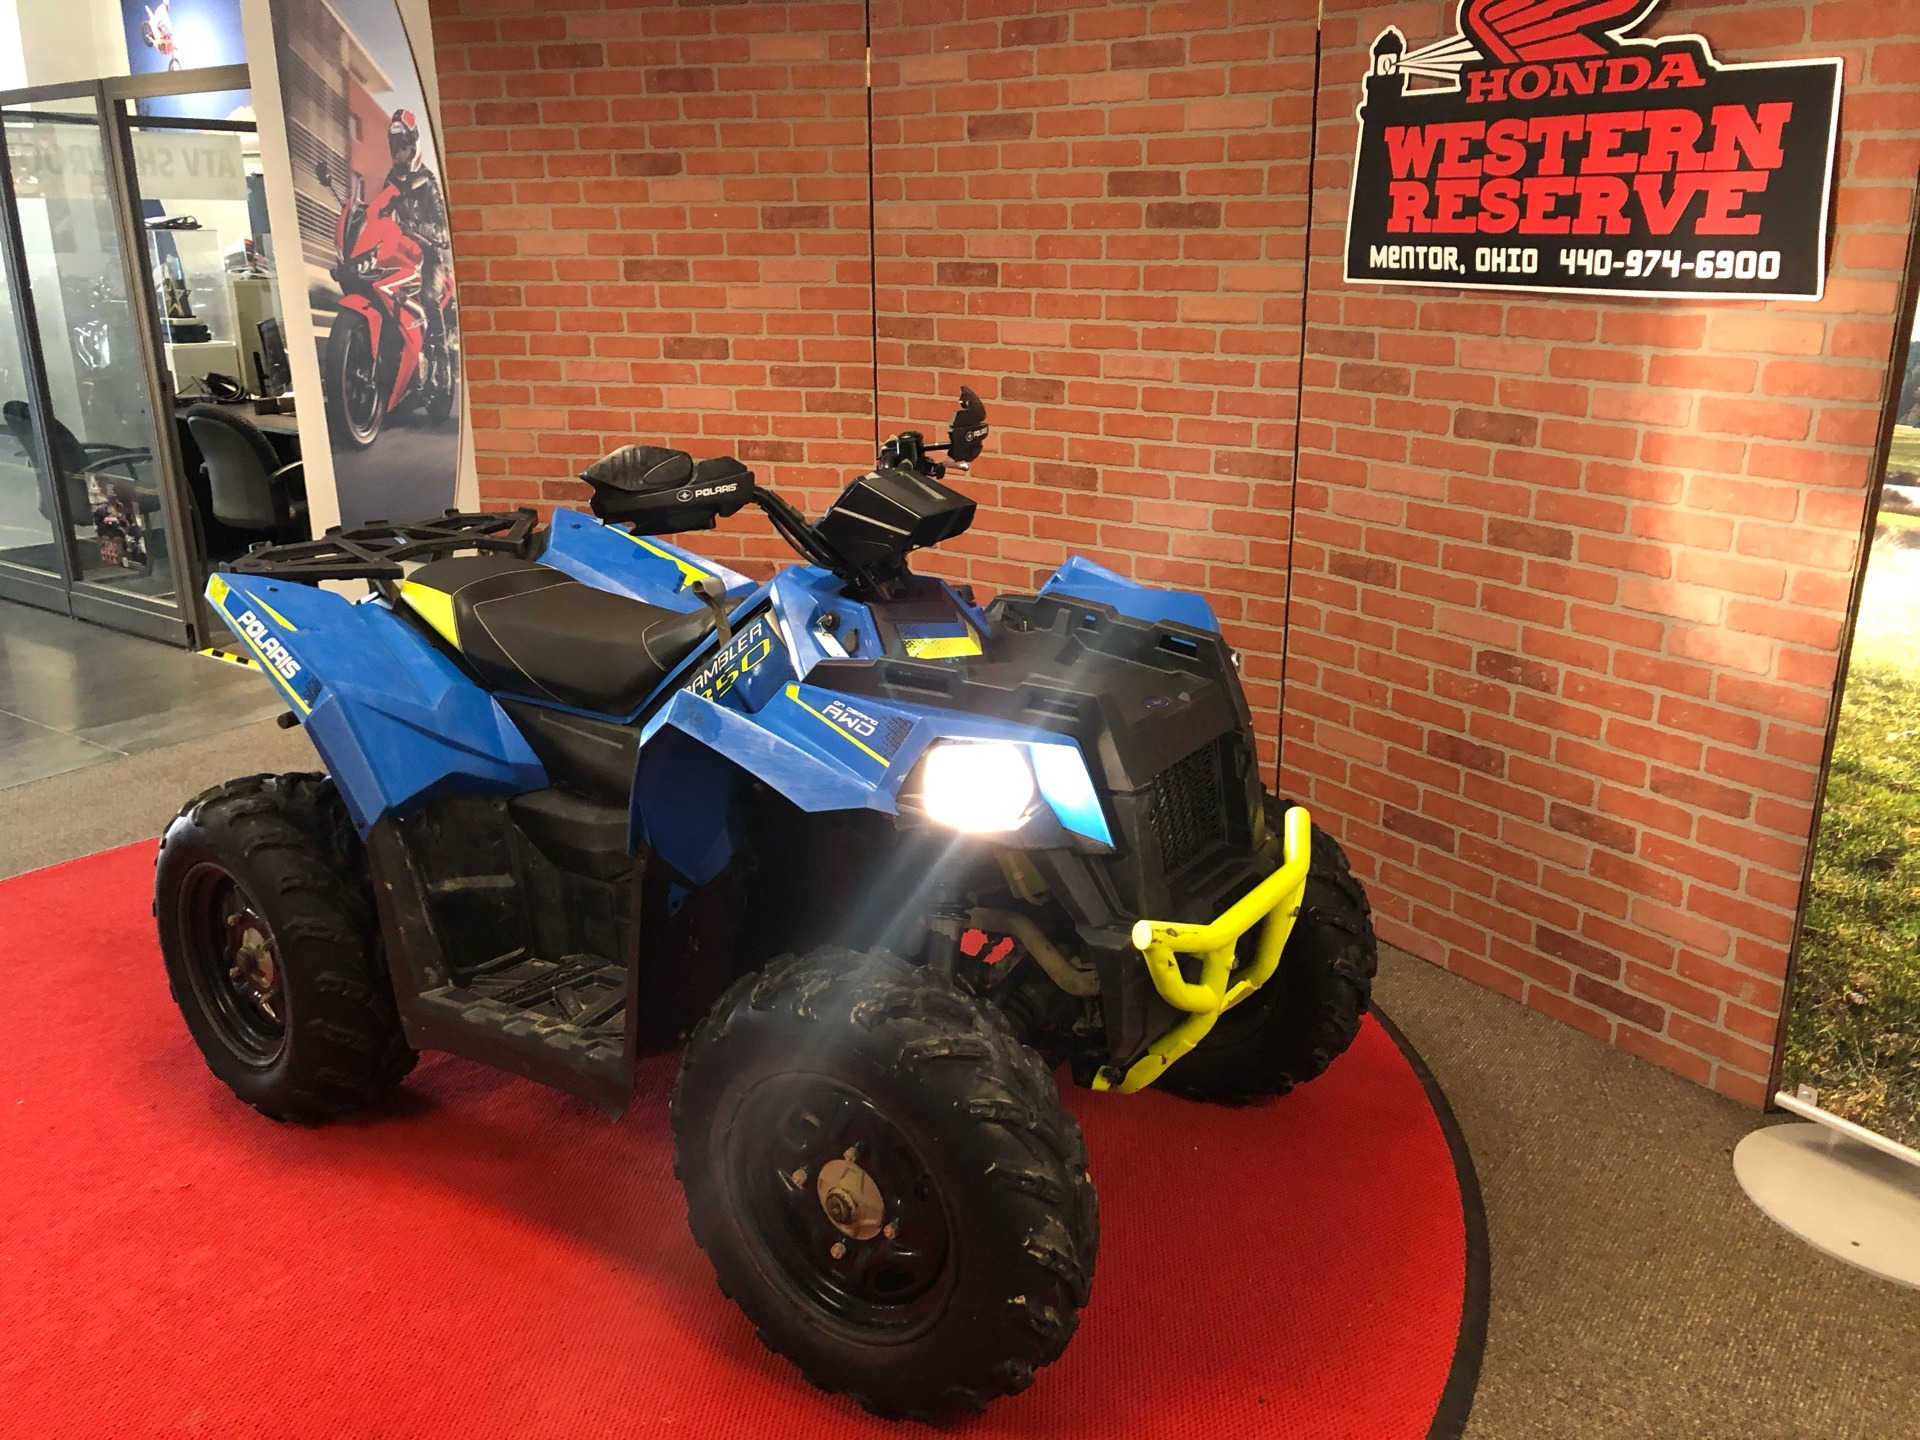 2018 Polaris Scrambler 850 in Mentor, Ohio - Photo 1